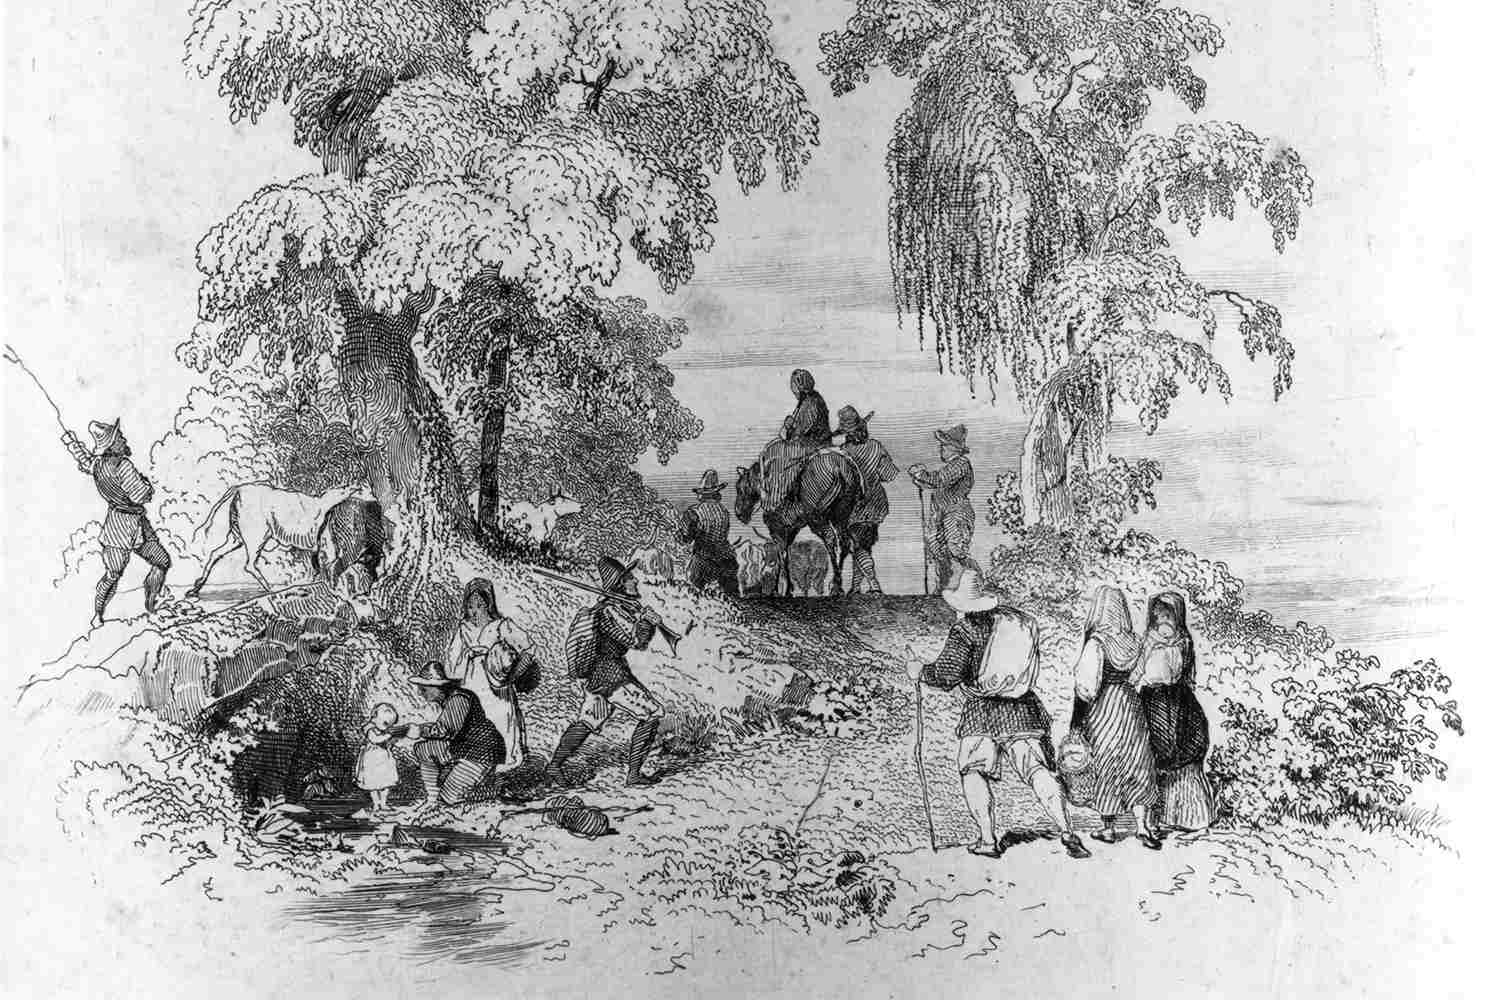 American Puritan reformer Thomas Hooker leads his followers to new homes in Hartford, Connecticut, 1636